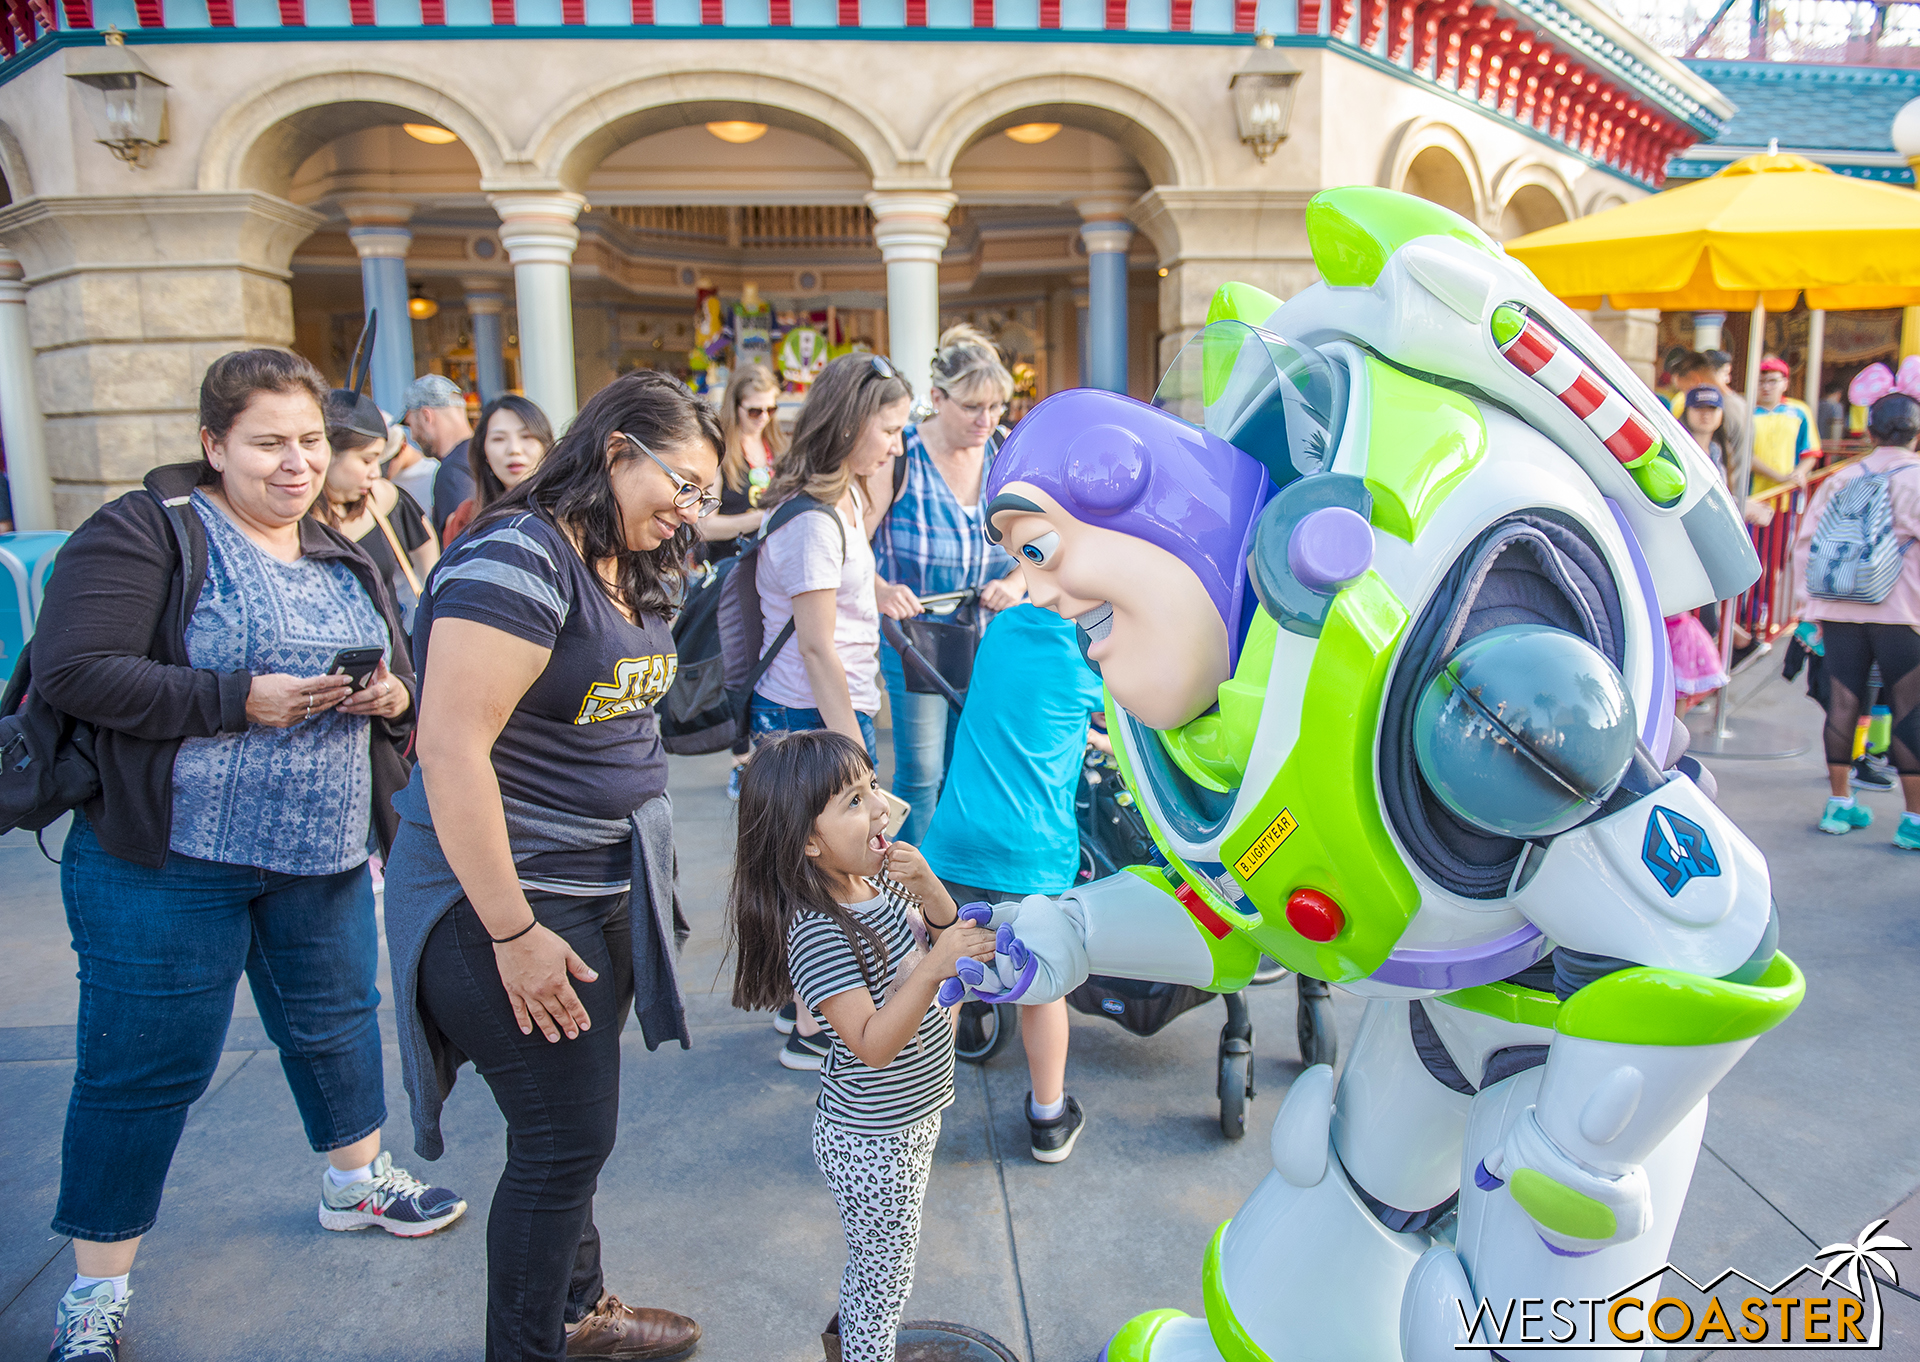 Buzz Lightyear is also out and about, fittingly.